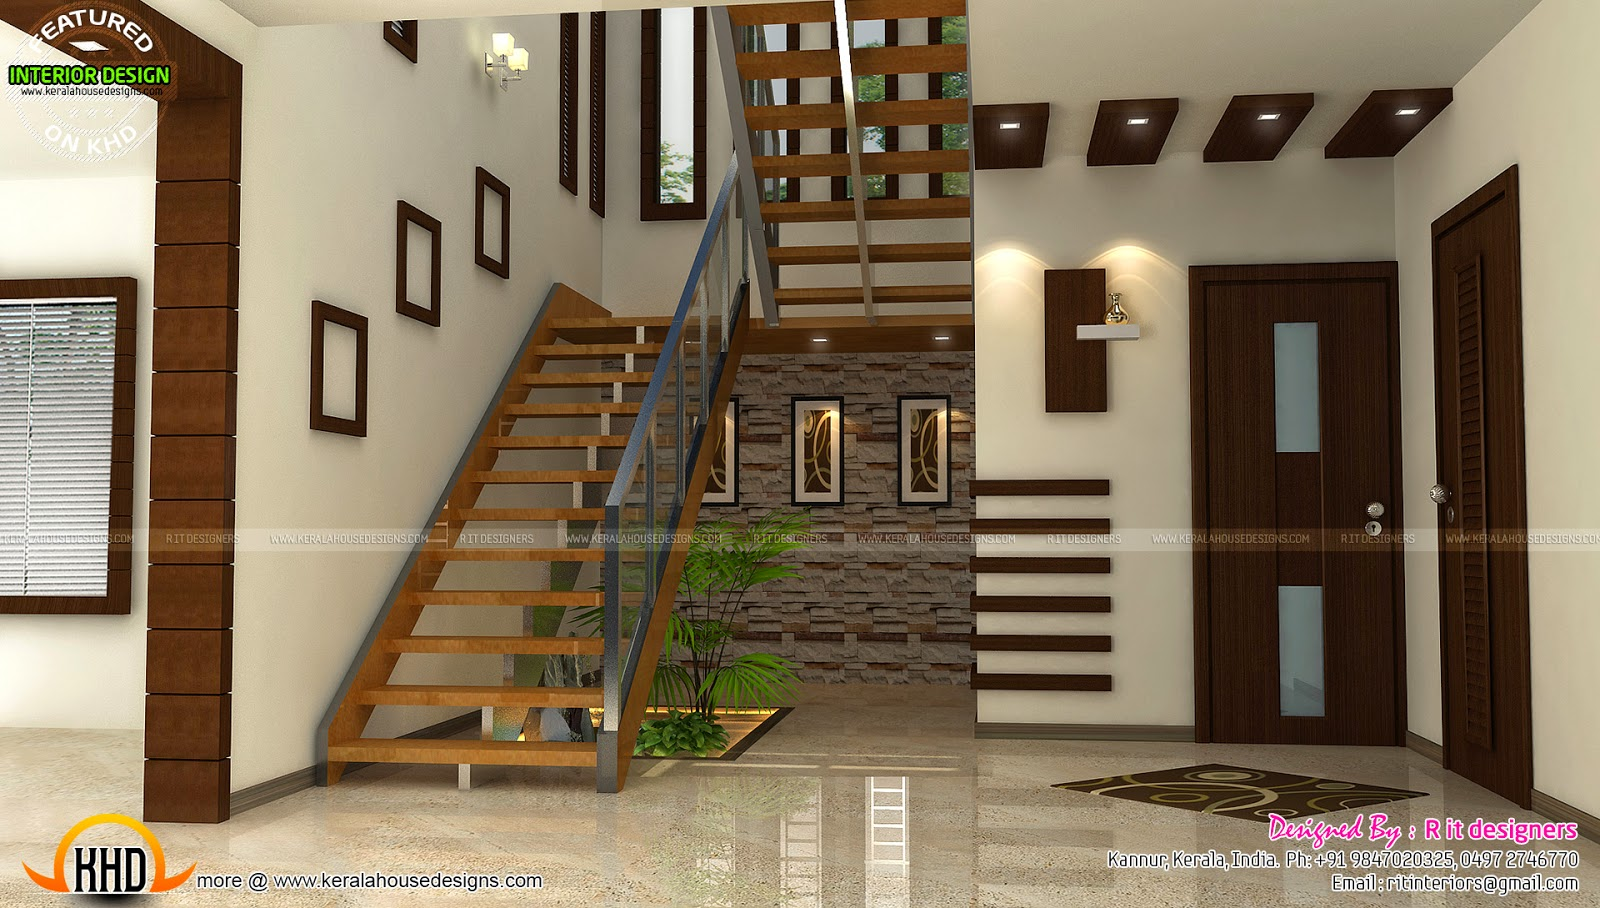 Staircase bedroom dining interiors kerala home design for New model house interior design